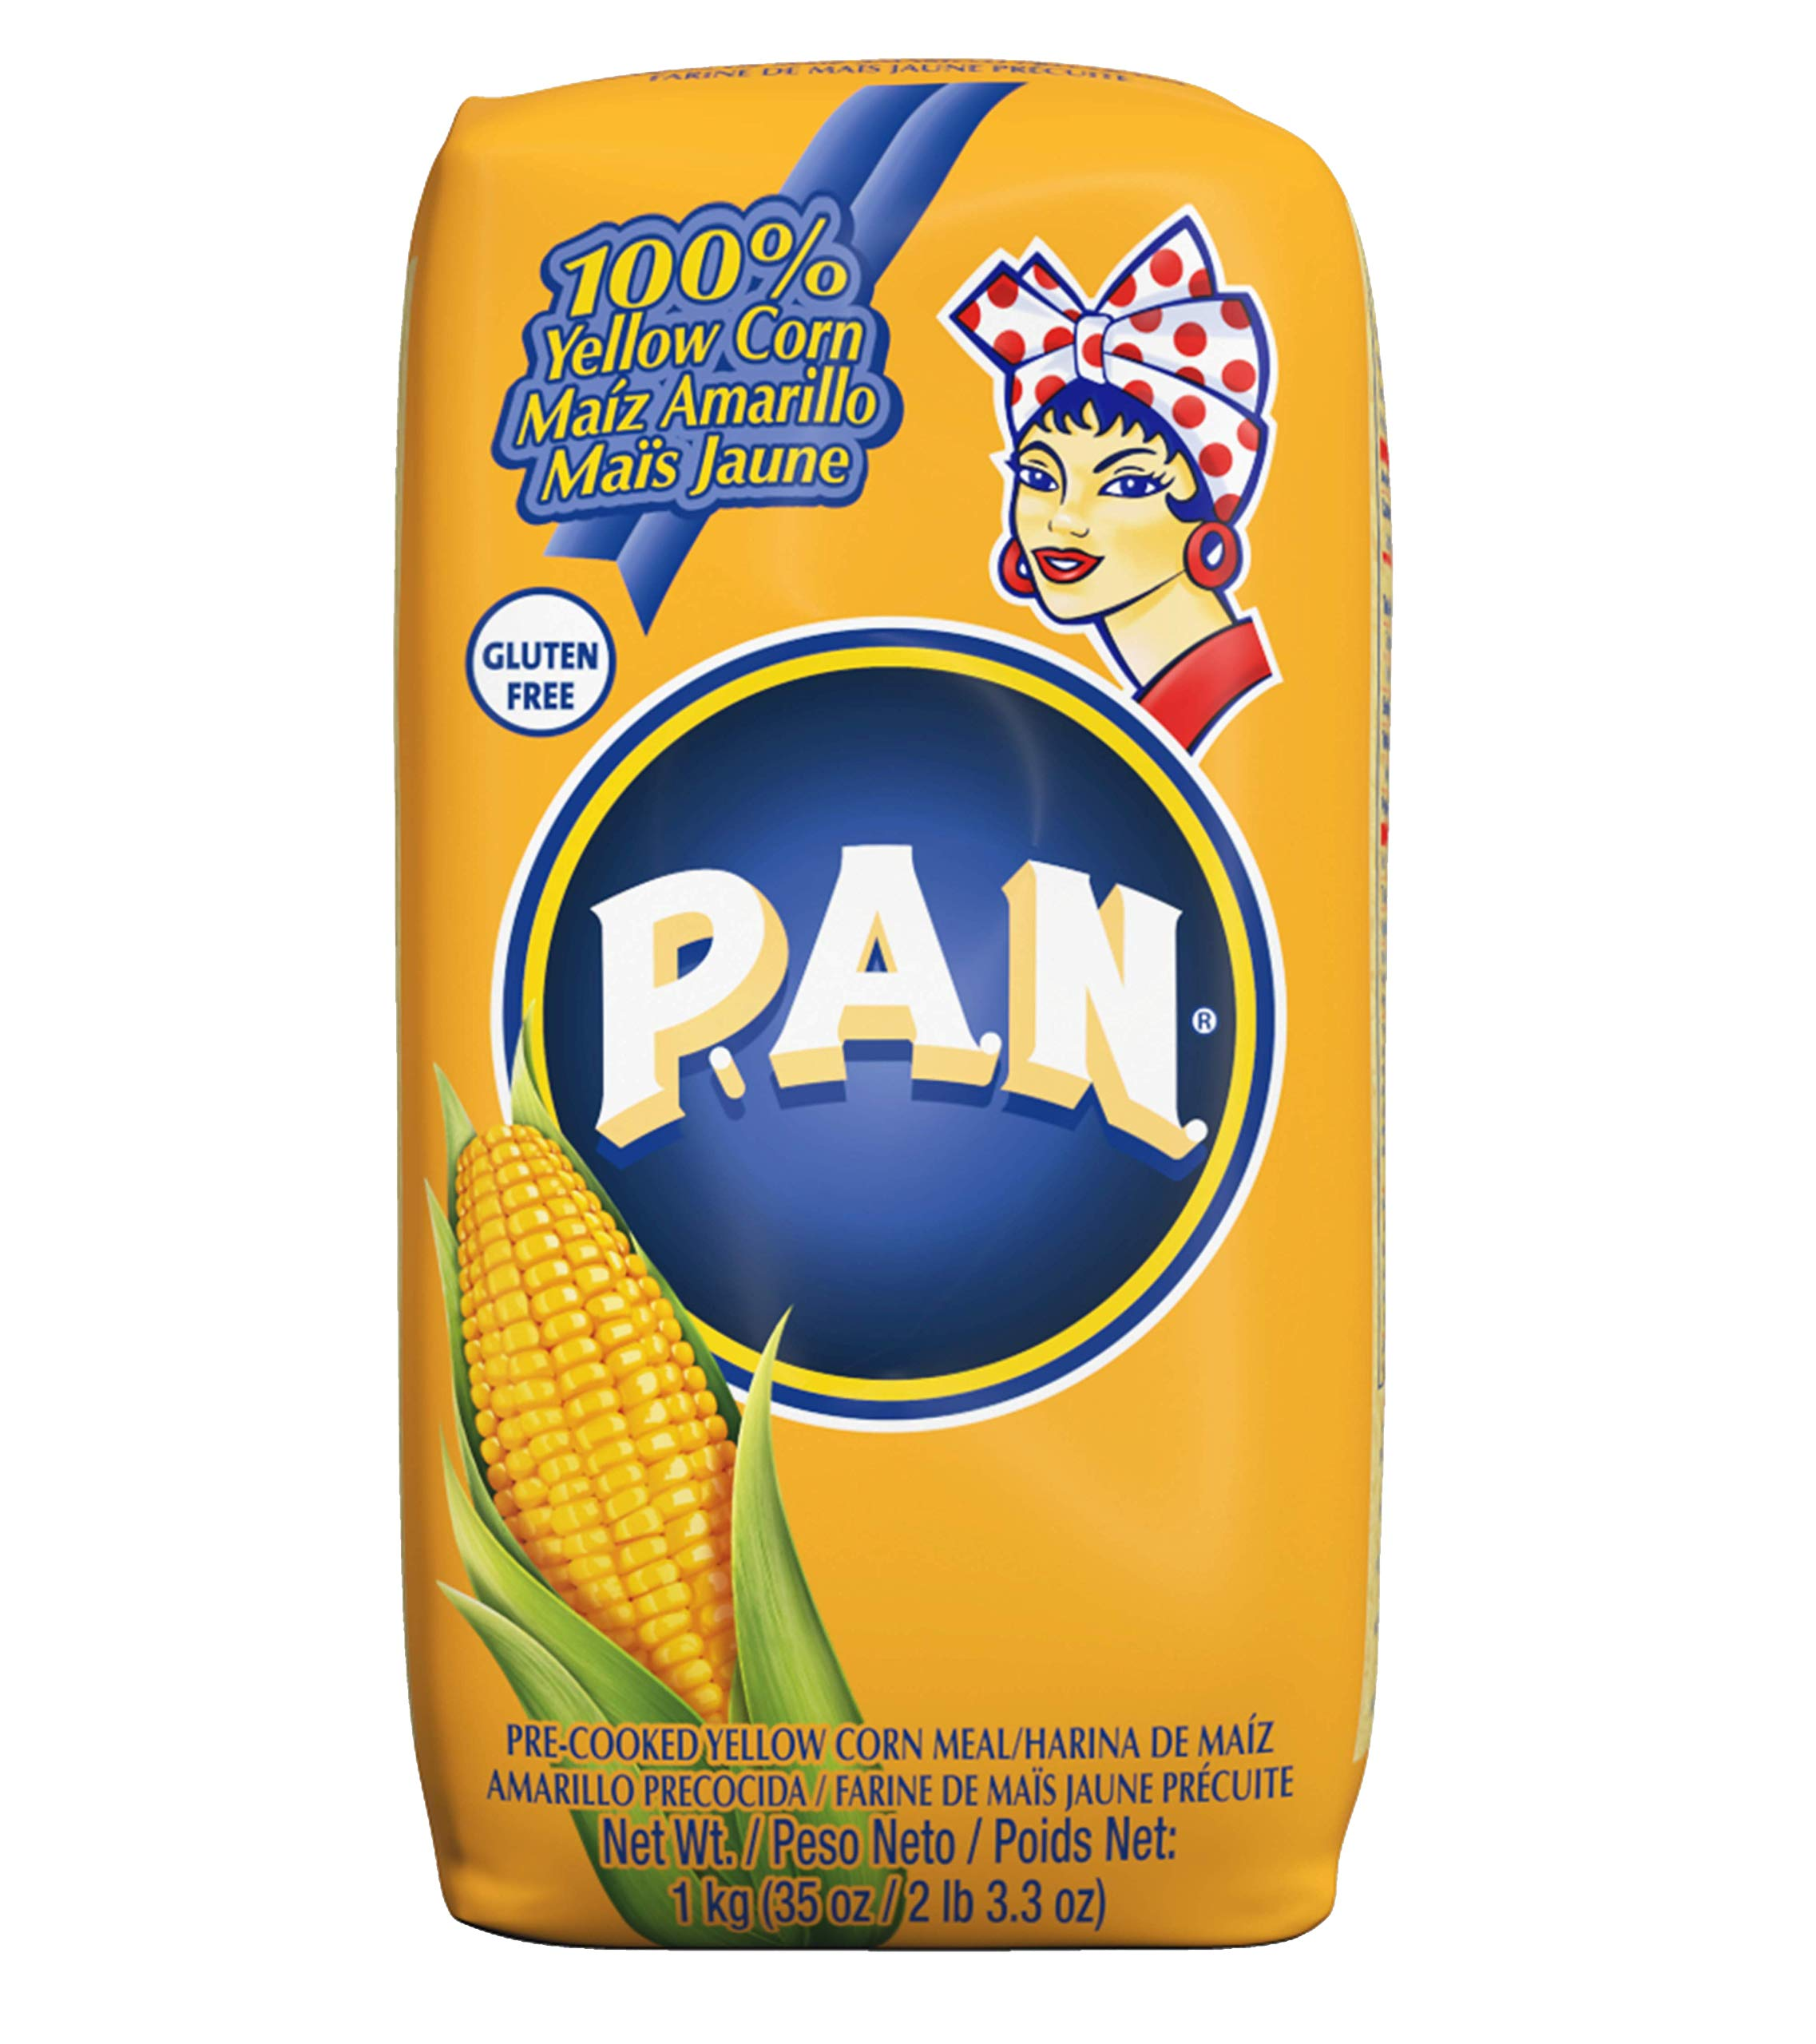 P.A.N. Yellow Corn Meal - Pre-cooked Gluten Free and Kosher Flour for Arepas, 1 Kilogram (35 Ounces / 2 Pounds 3.3 Ounces) (Pack of 6) by P.A.N.